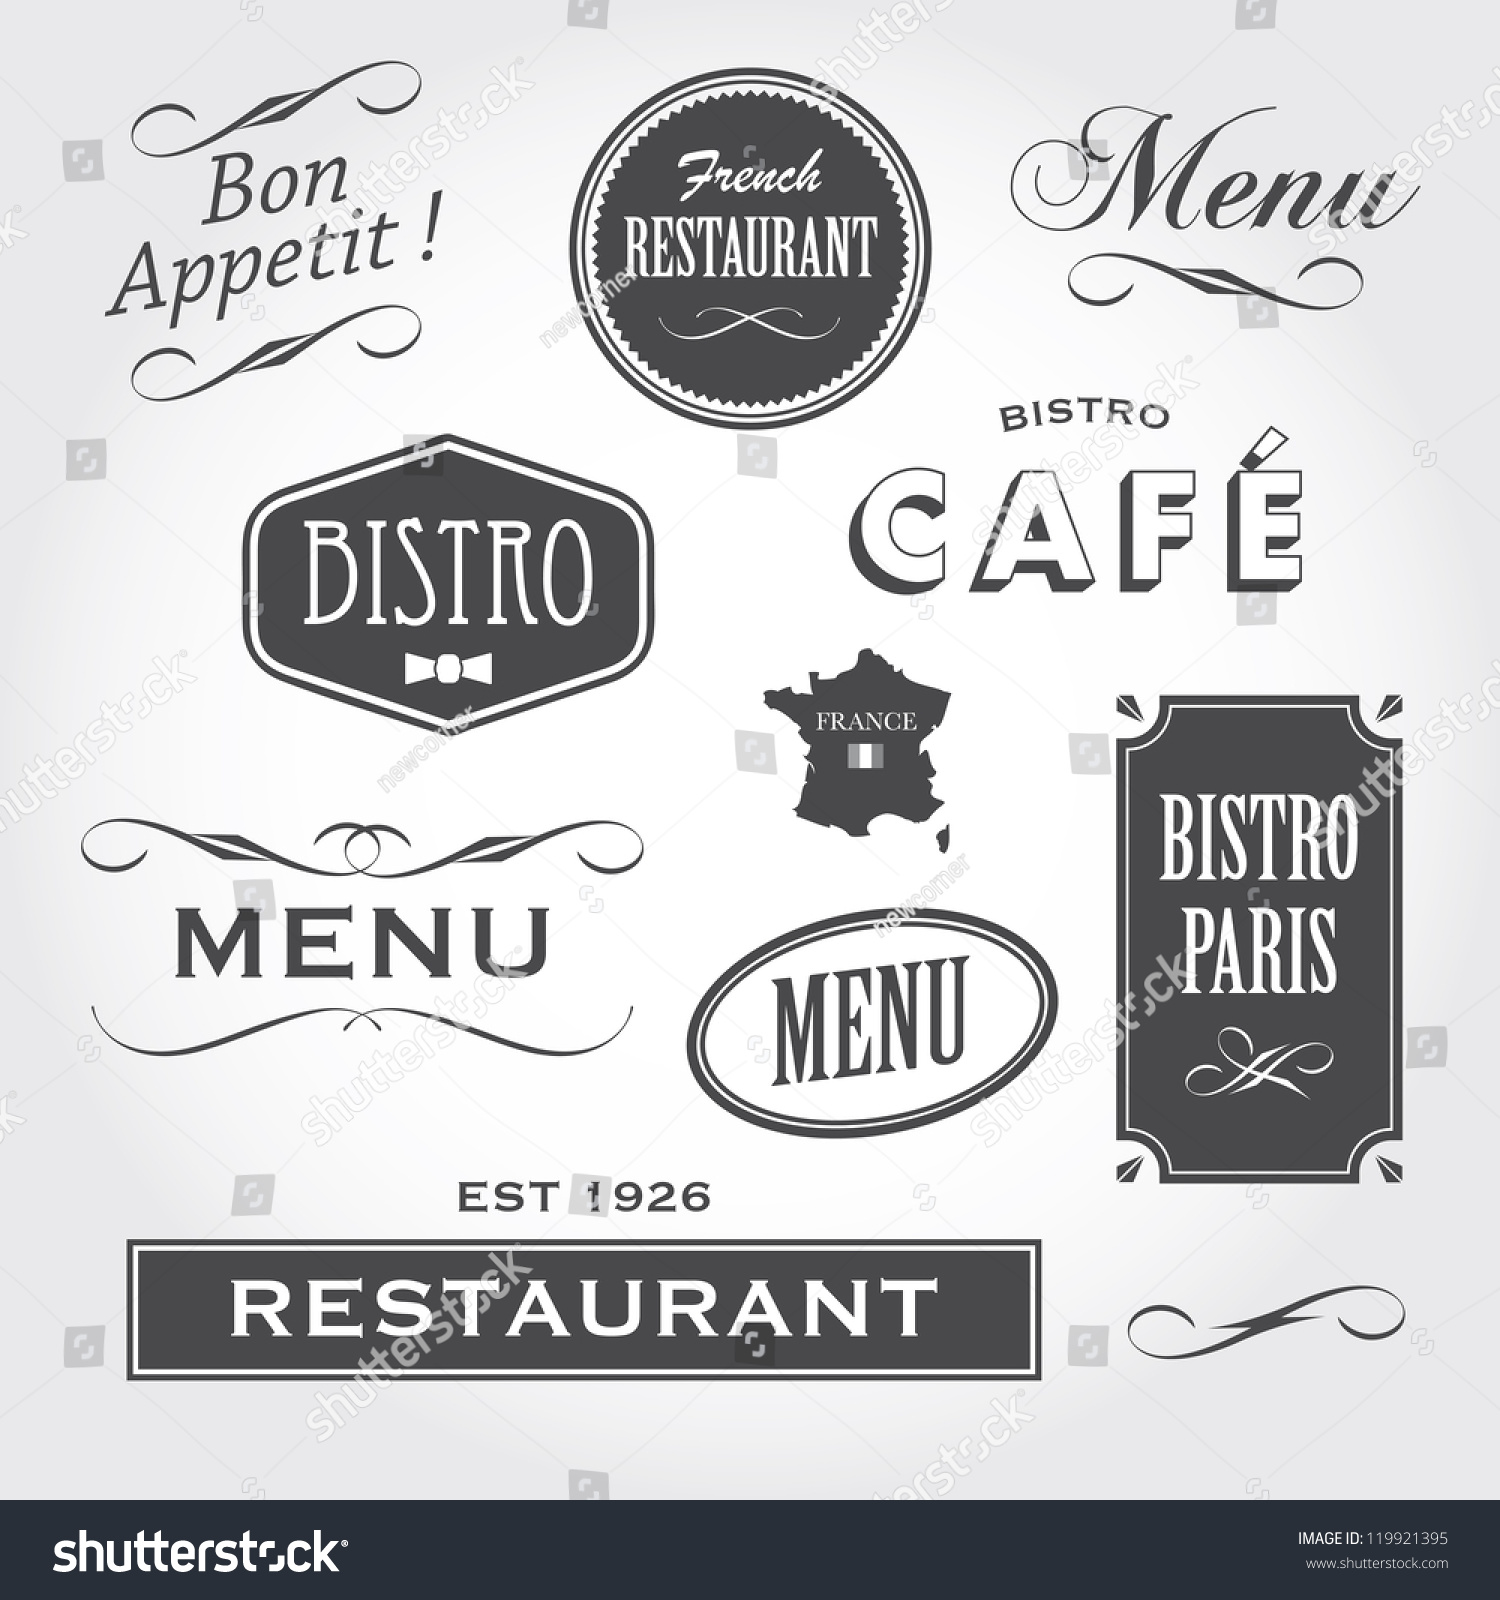 Vintage style ornaments - Vintage Retro French Restaurant Signs And Ornaments